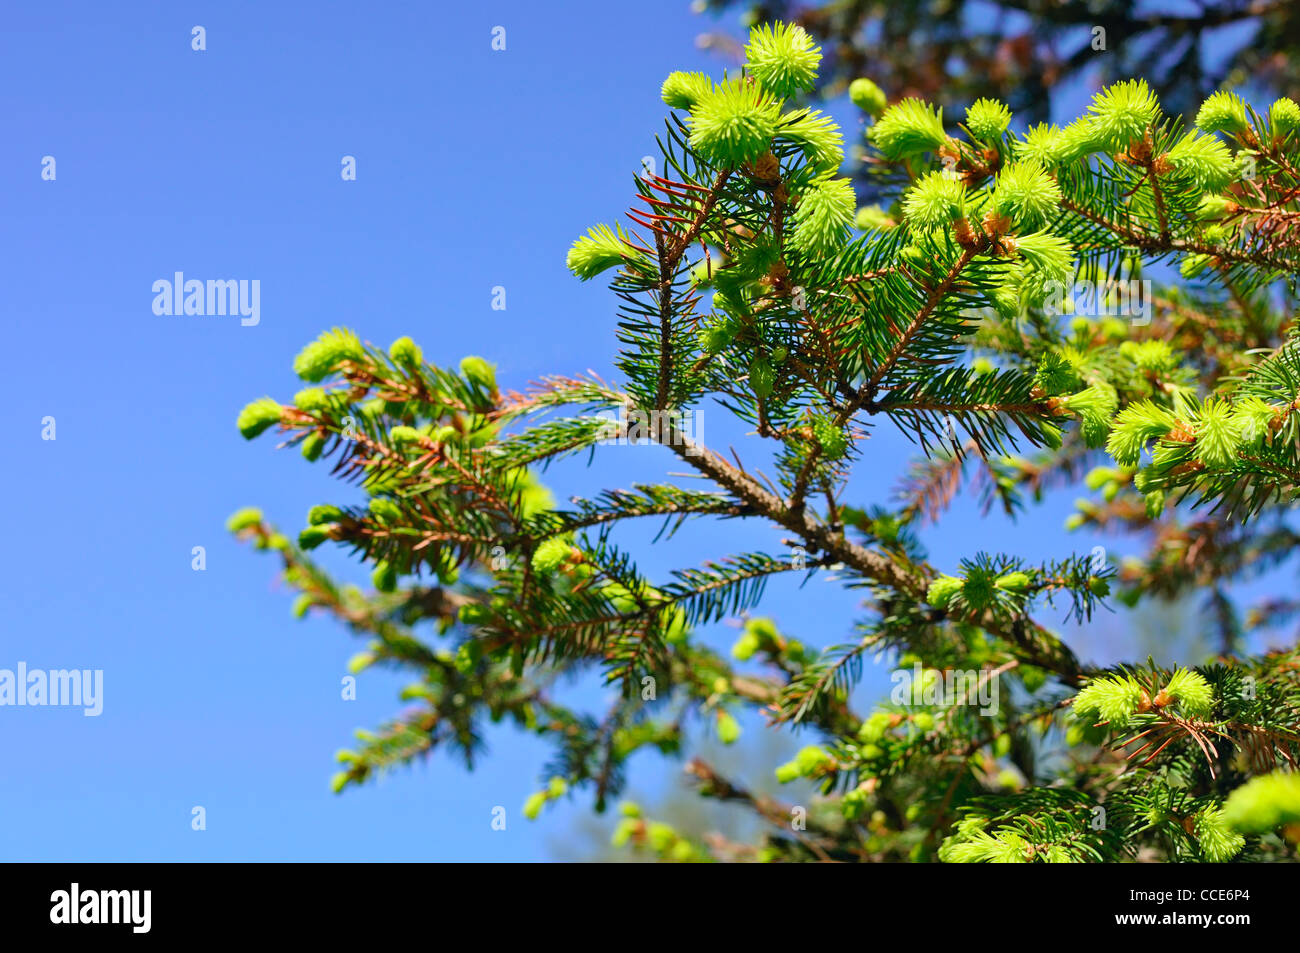 Young pine tree branch - Stock Image